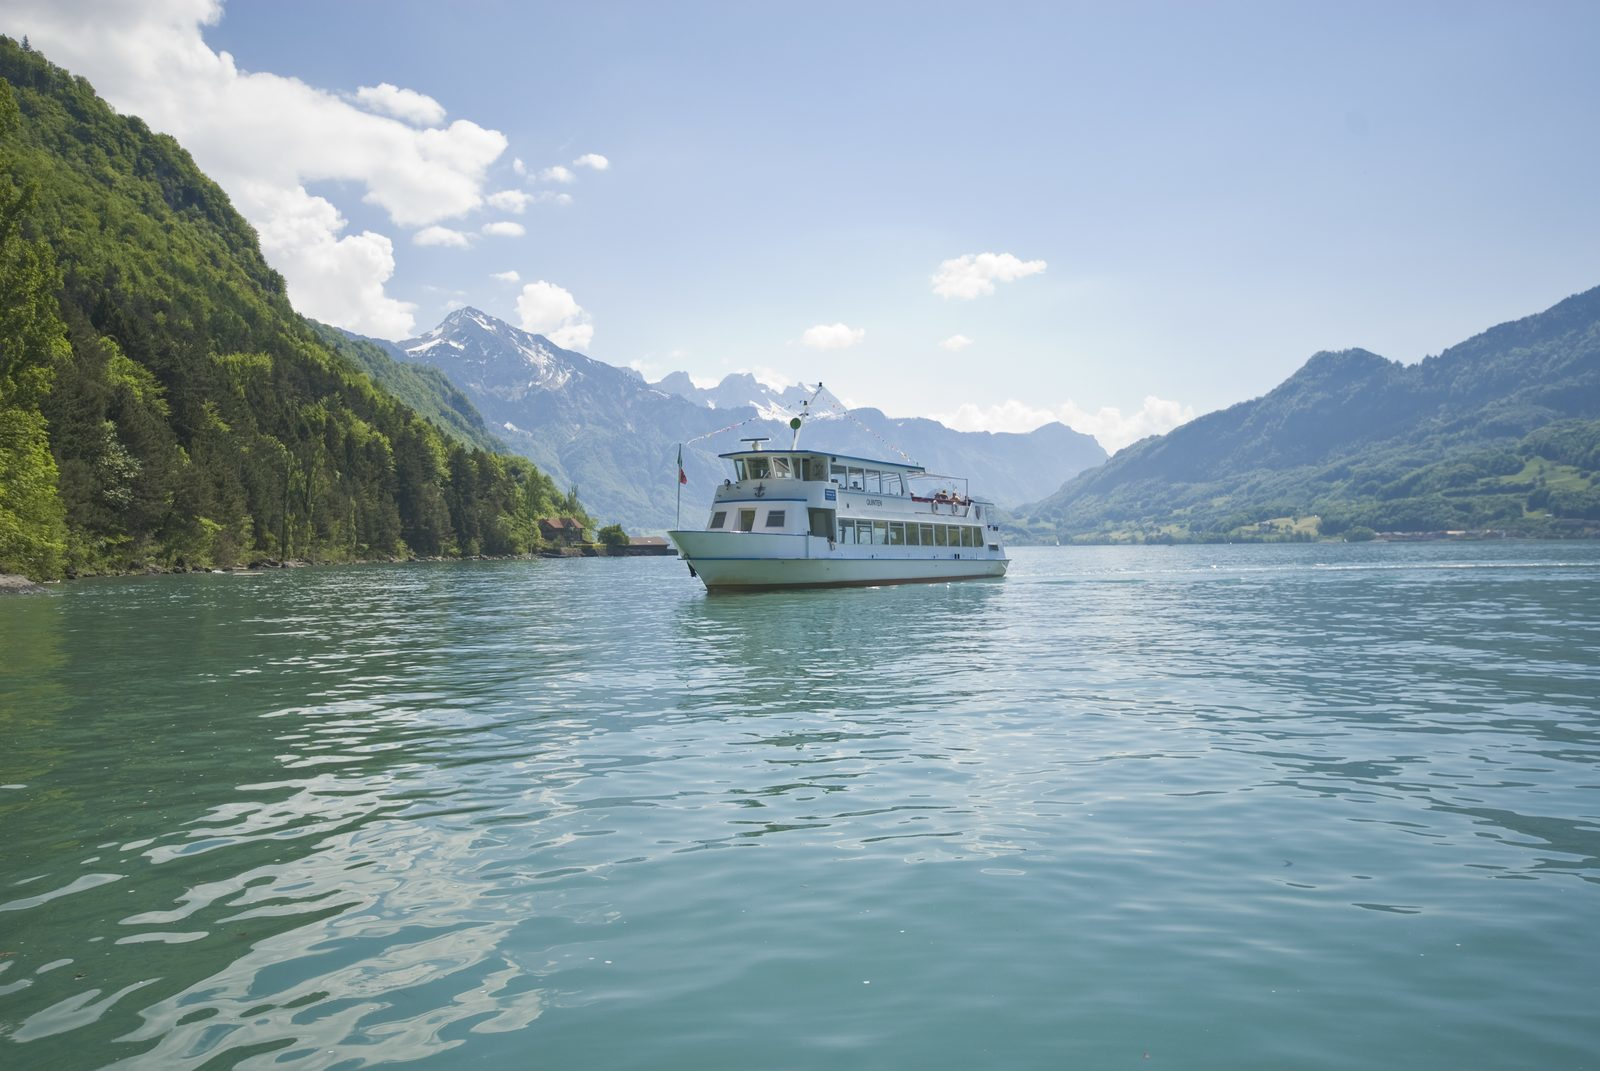 Boat trip on the Walensee